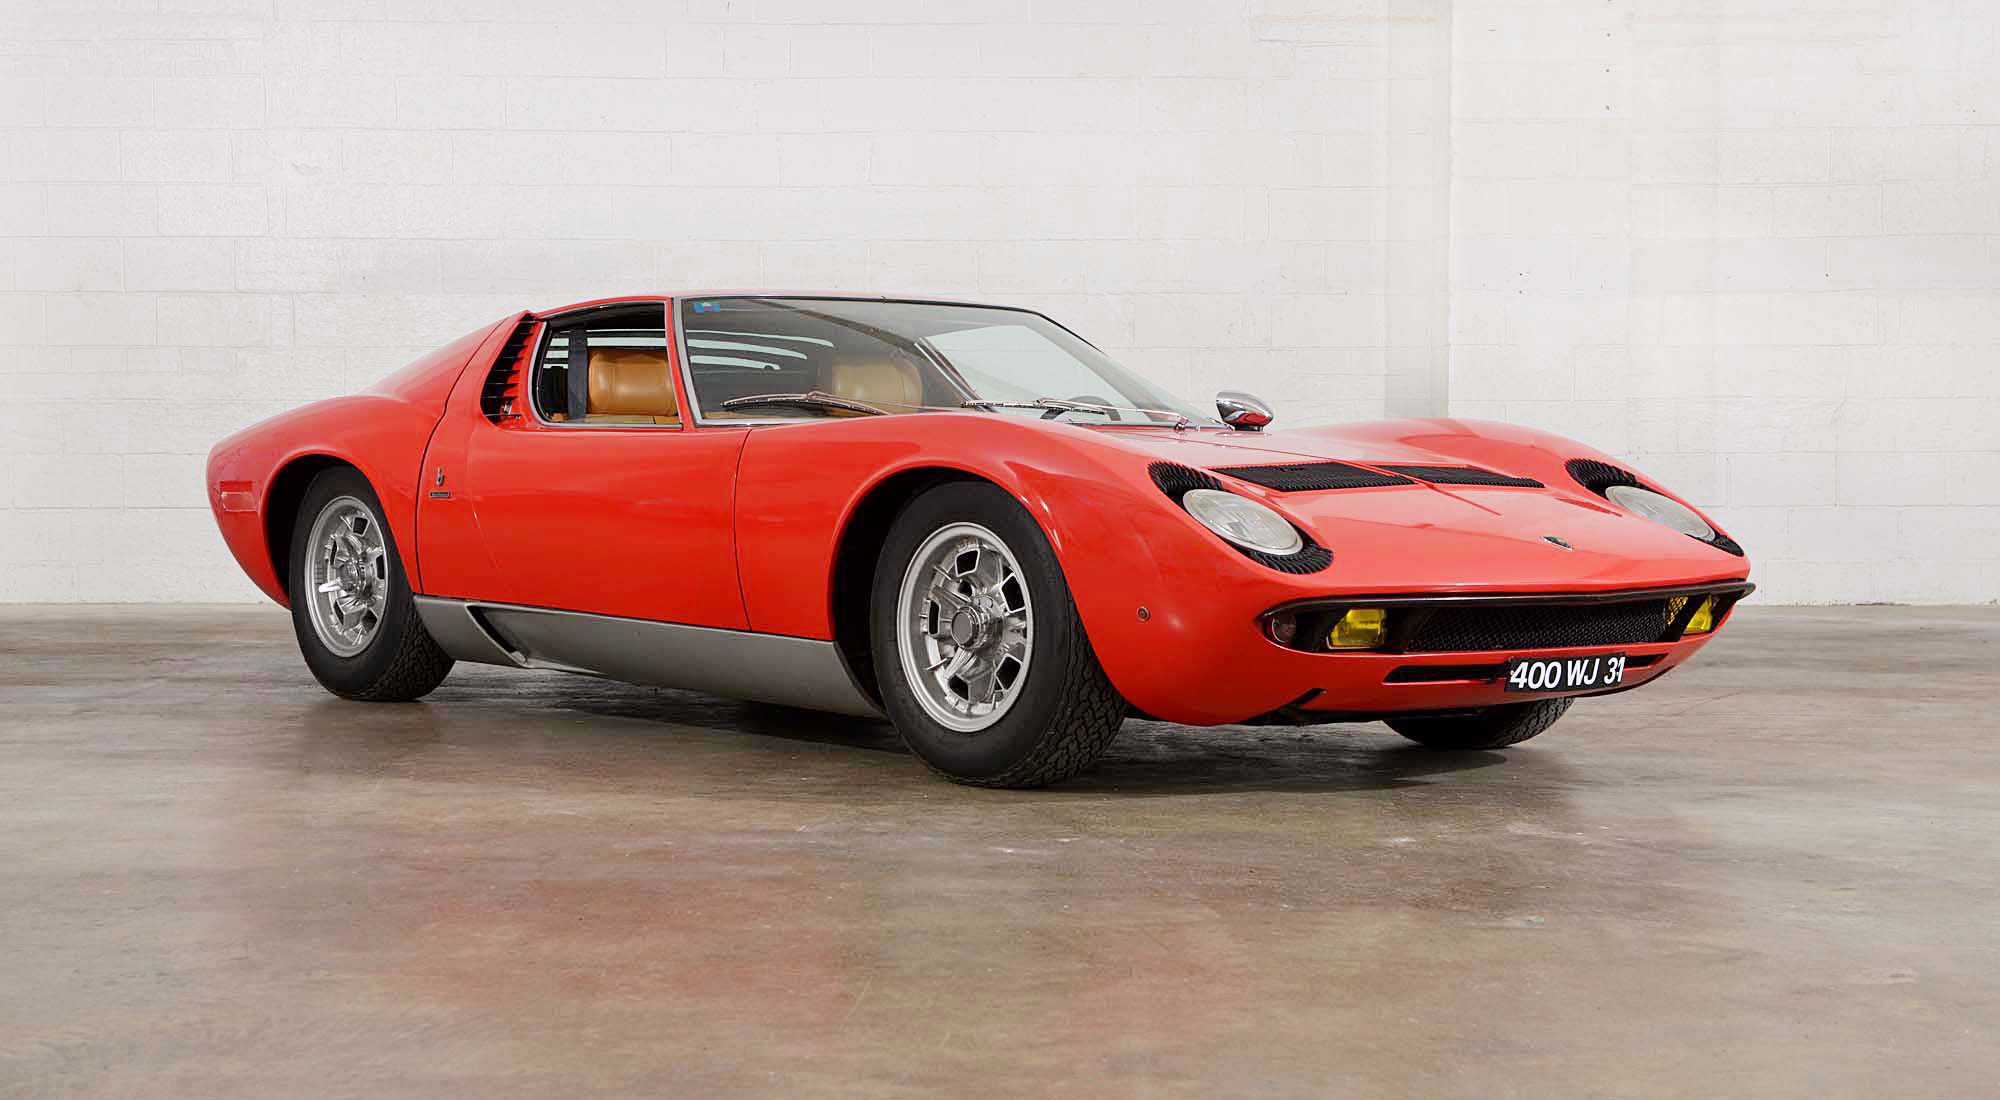 1969 Lamborghini Miura P400S VIN 4377 is beloved for its astonishing originality, by the foremost expert on the marque, Valentino Balboni